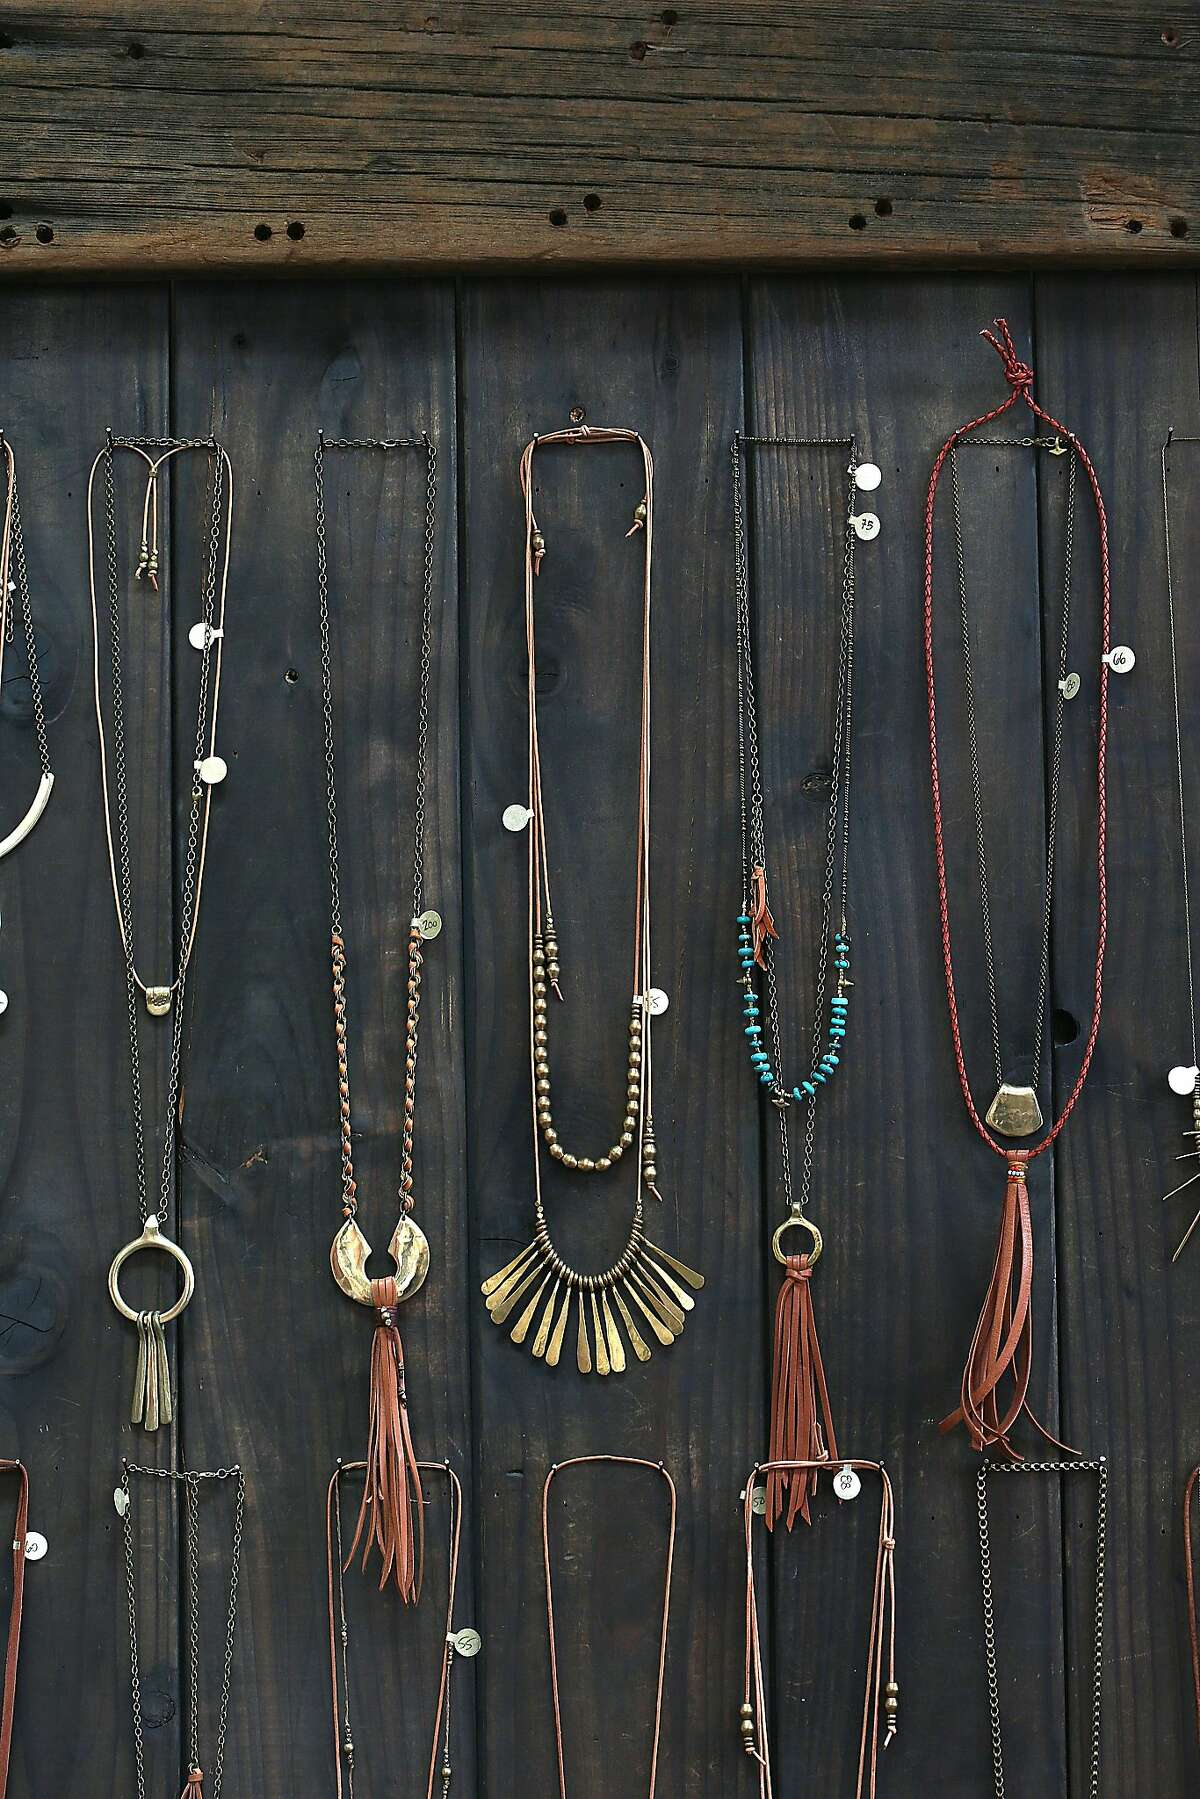 Necklaces from jewelry designer Marisa Haskell of Marisa Mason Jewelry displayed in her studio in Temescal Alley on Monday, July 24, 2017, in Oakland, Calif.